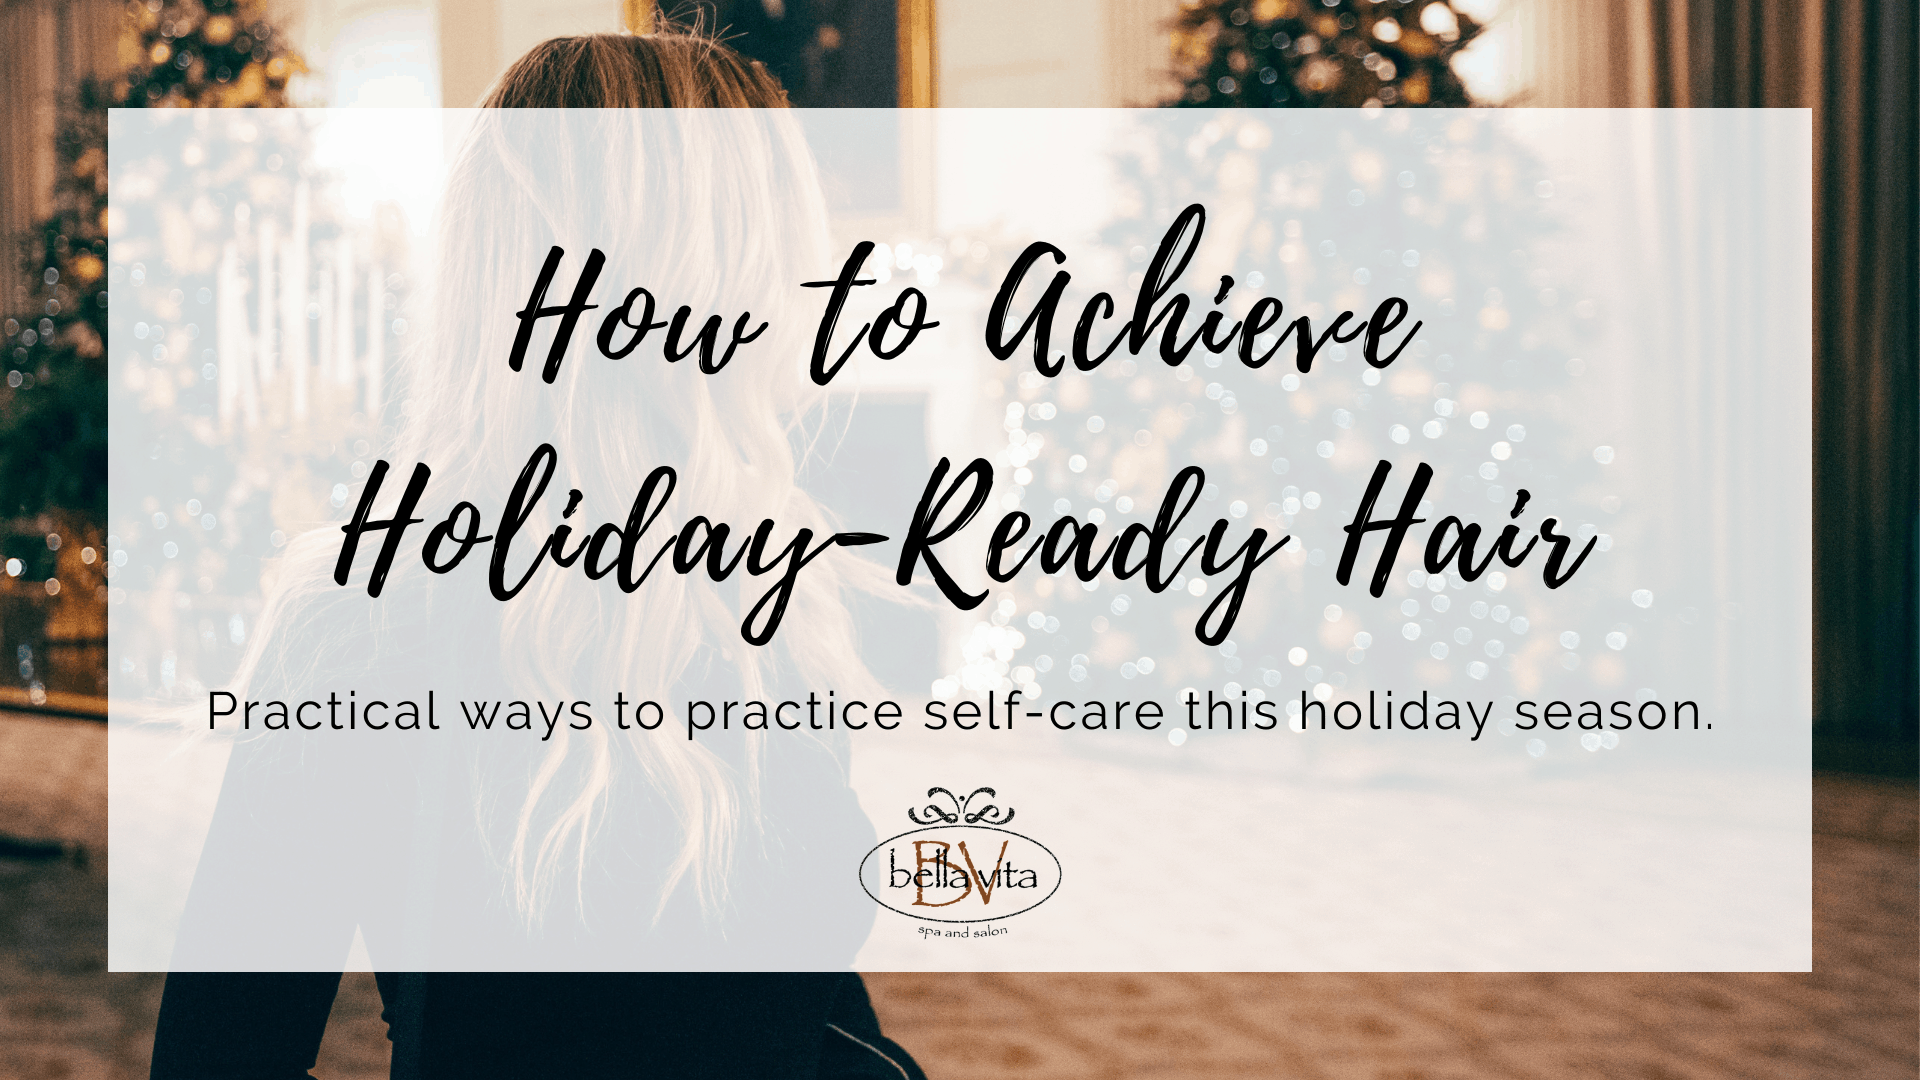 Holiday-Ready Hair